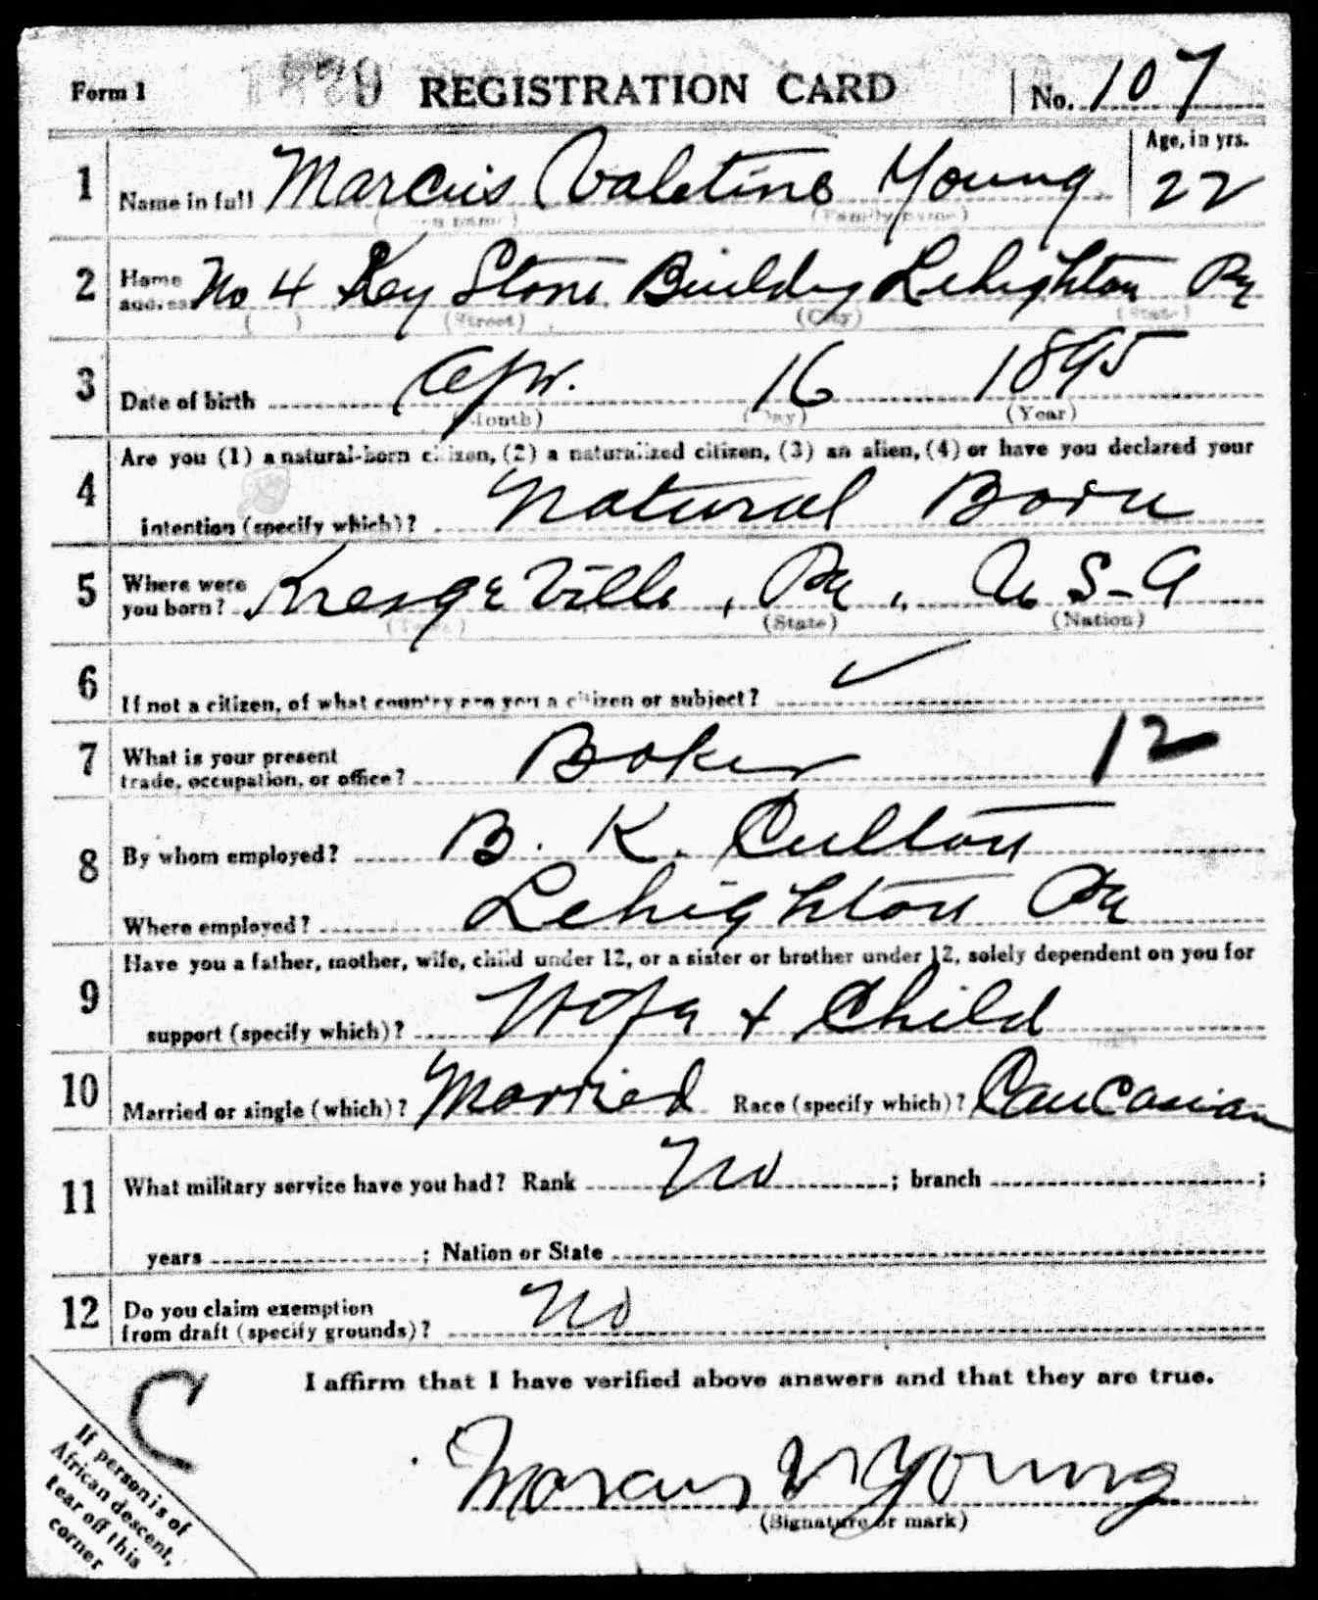 cultured carbon county Bill Clinton Speech Improvised marcus valentine young s wwi draft card